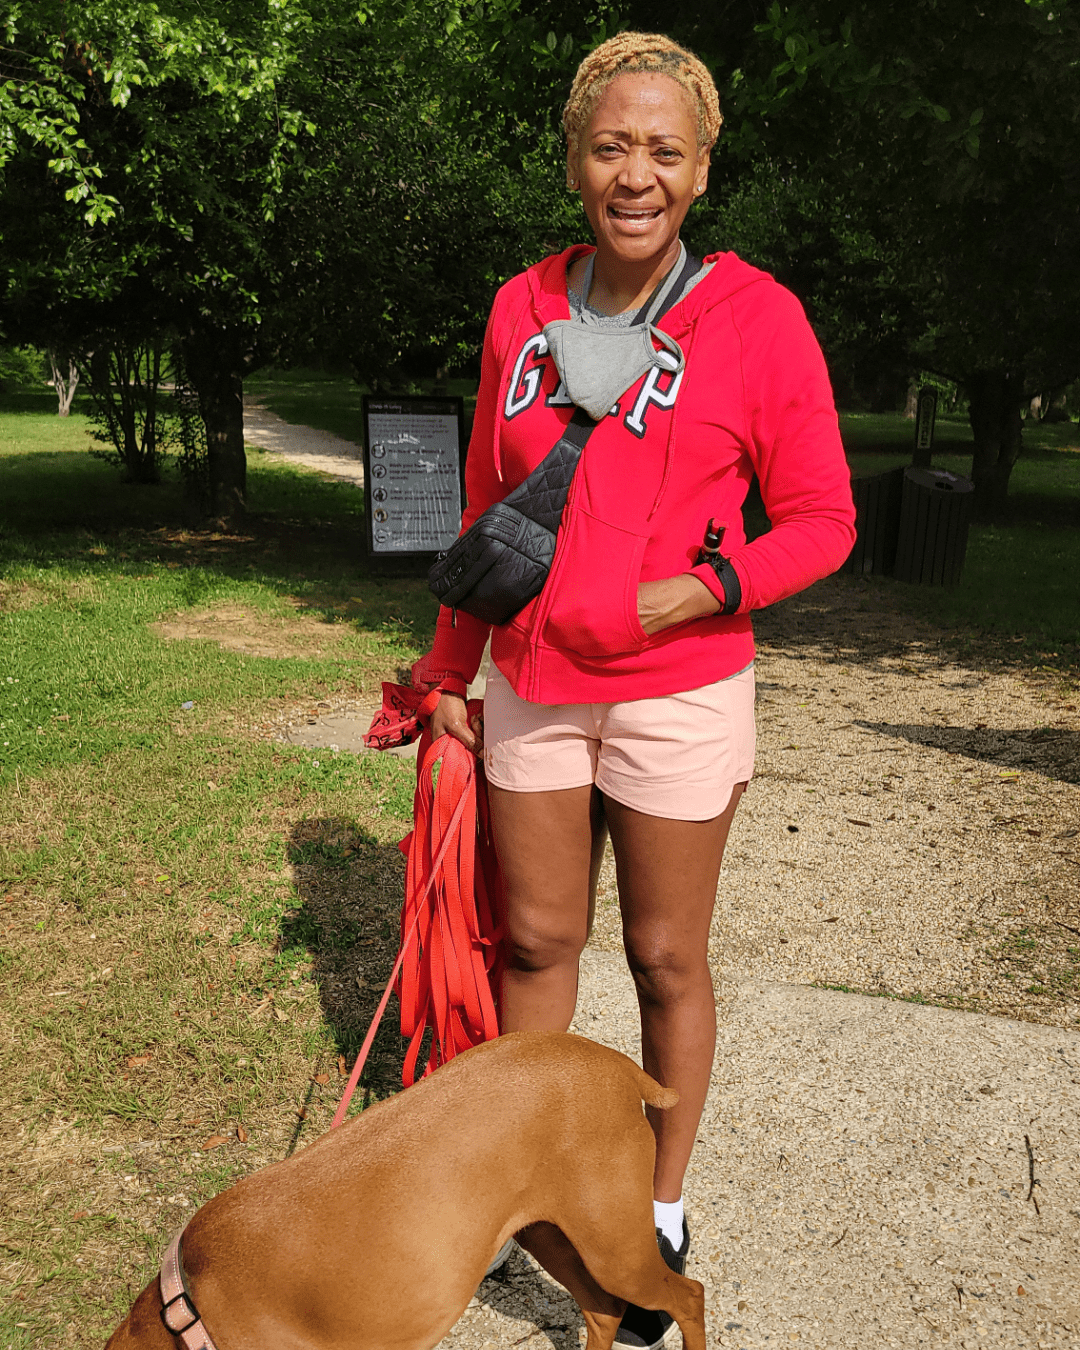 Photo of Junel Jeffrey in a red sweatshirt and shorts, smiling for the camera with her brown dog at the entrance to Kenilworth Aquatic Gardens.